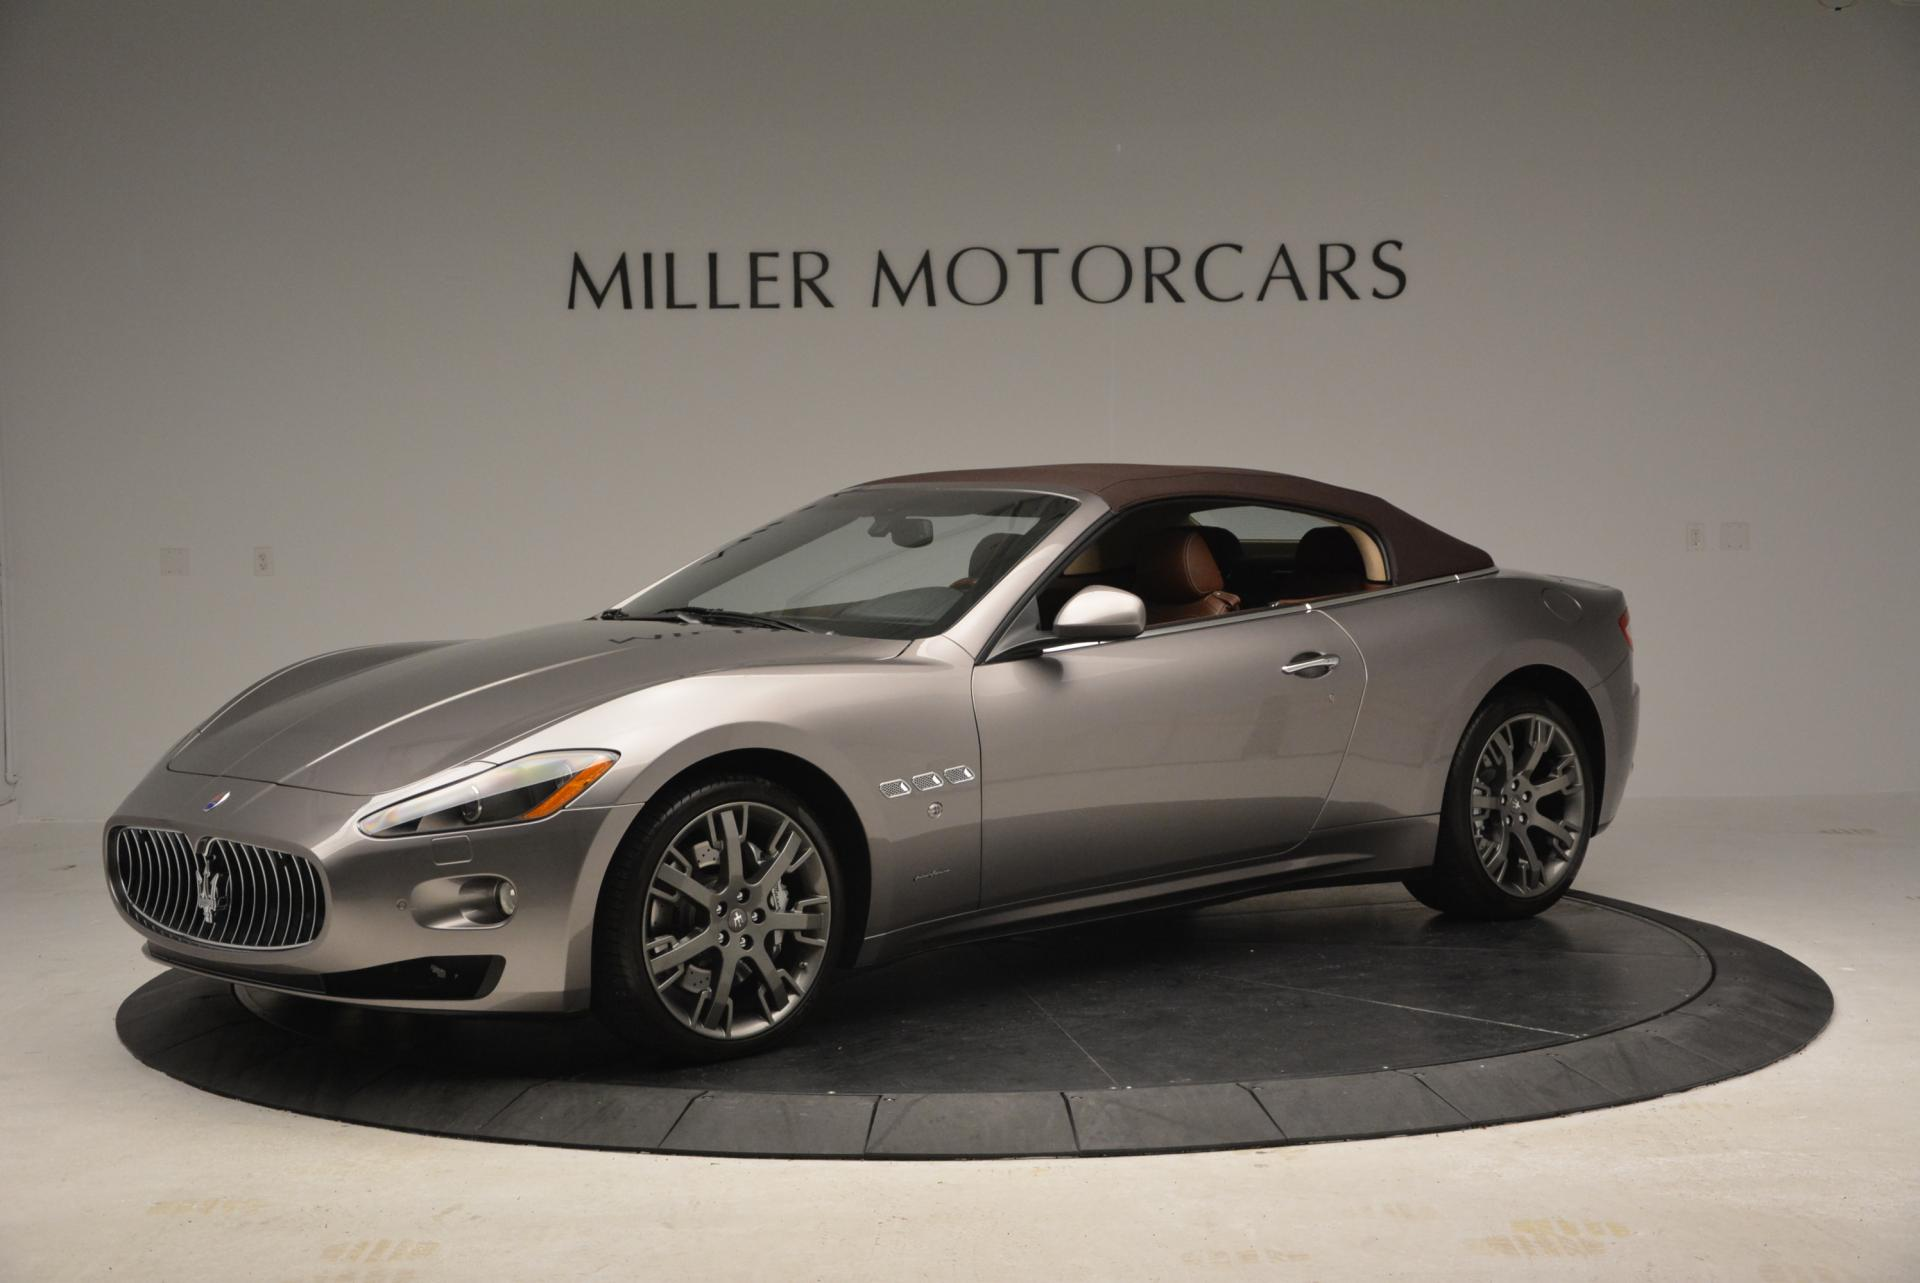 Used 2012 Maserati GranTurismo  For Sale In Westport, CT 157_p14